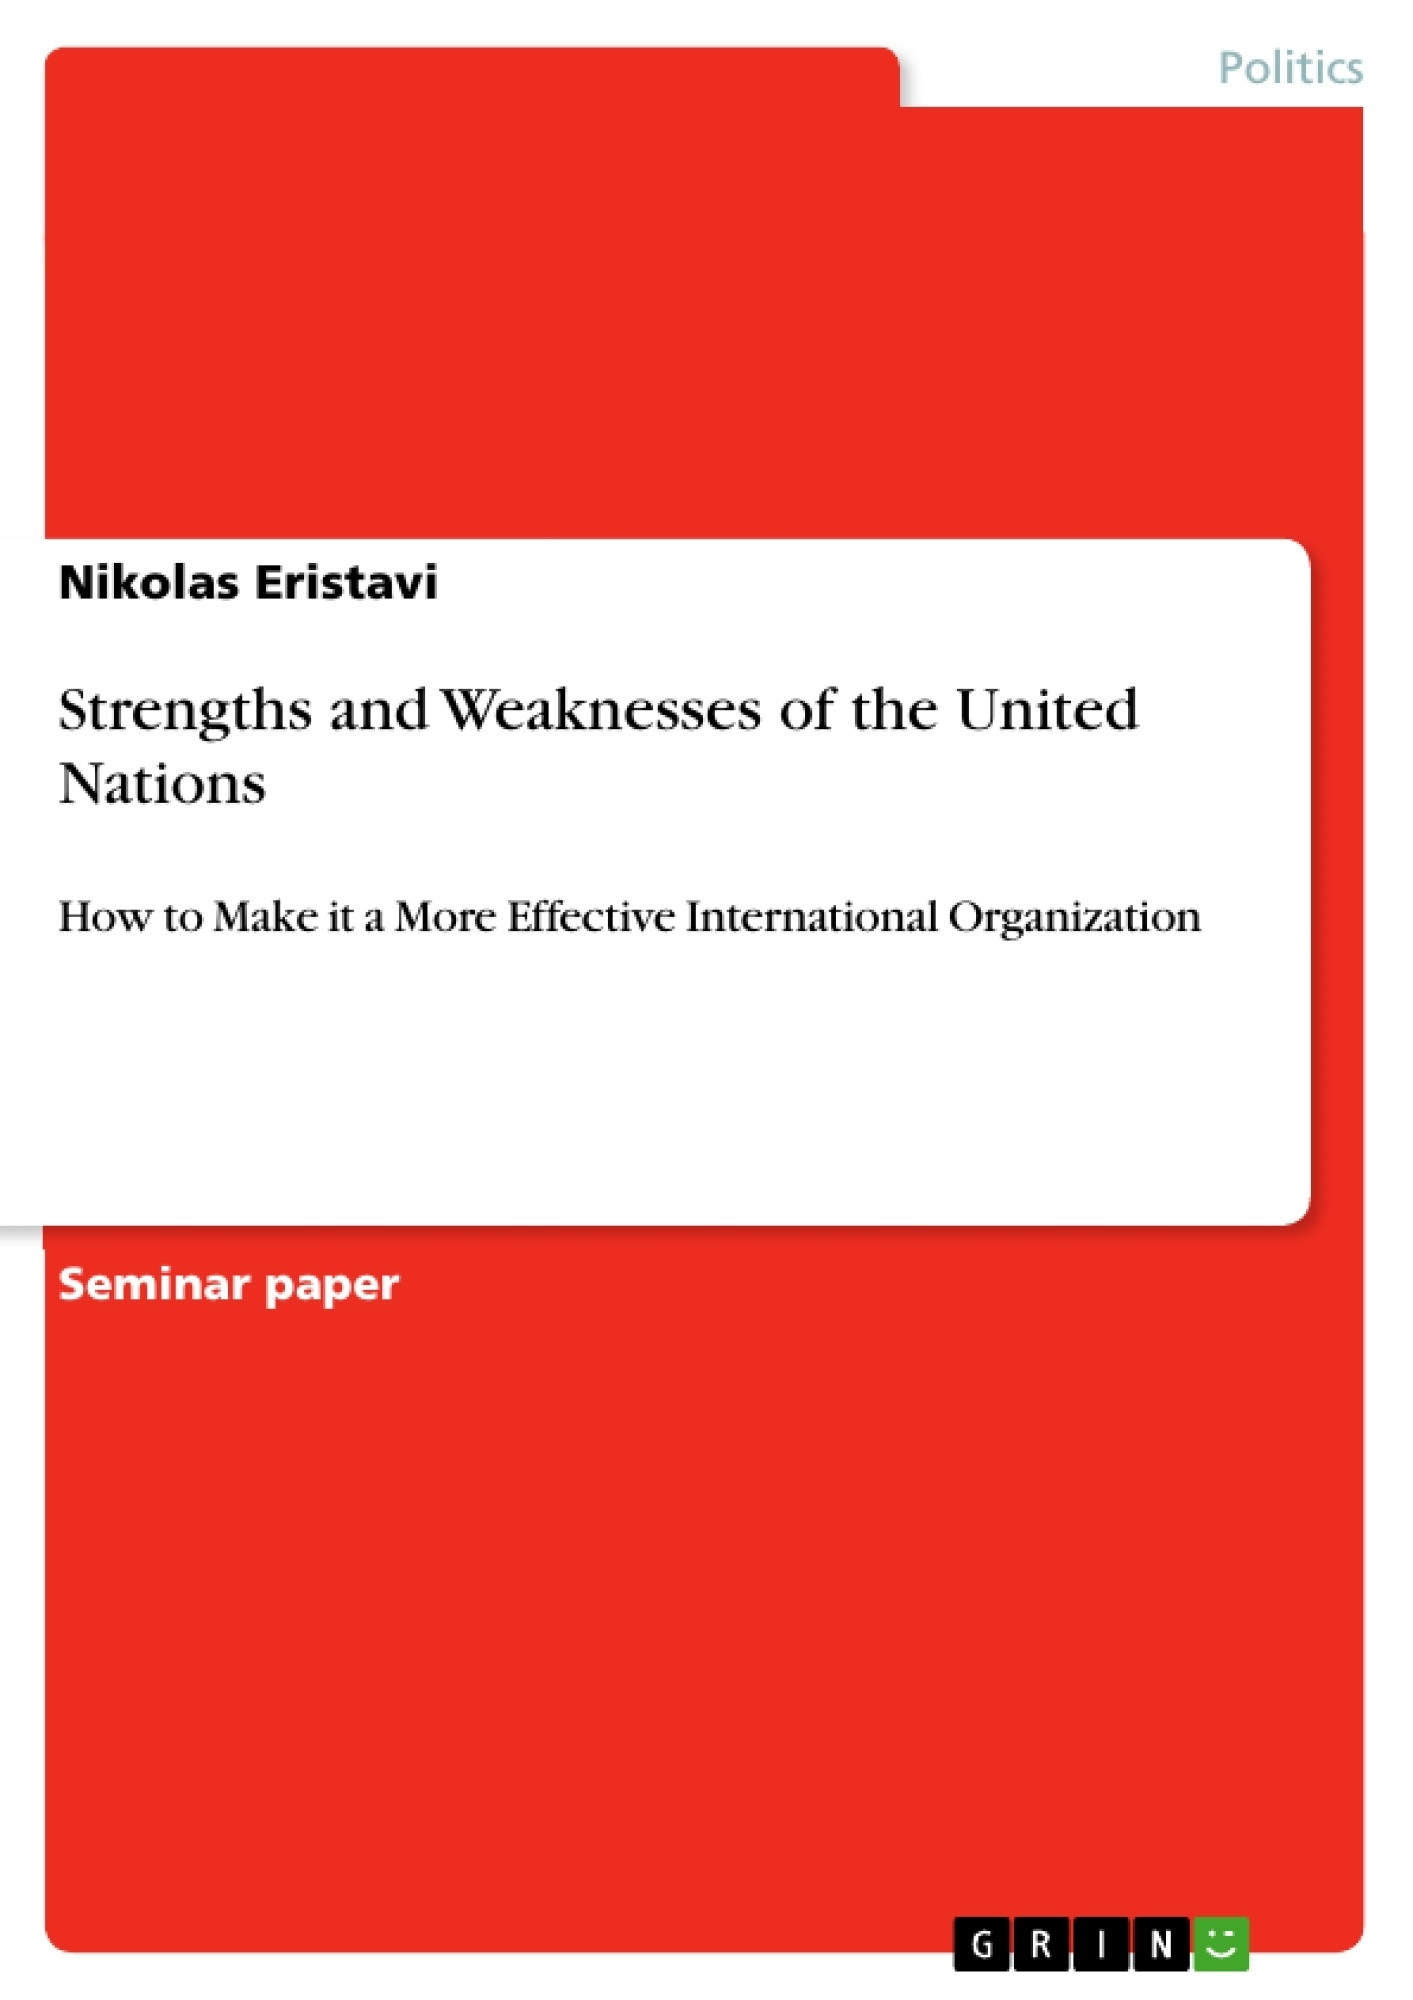 strengths and weaknesses of the united nations publish your strengths and weaknesses of the united nations publish your master s thesis bachelor s thesis essay or term paper